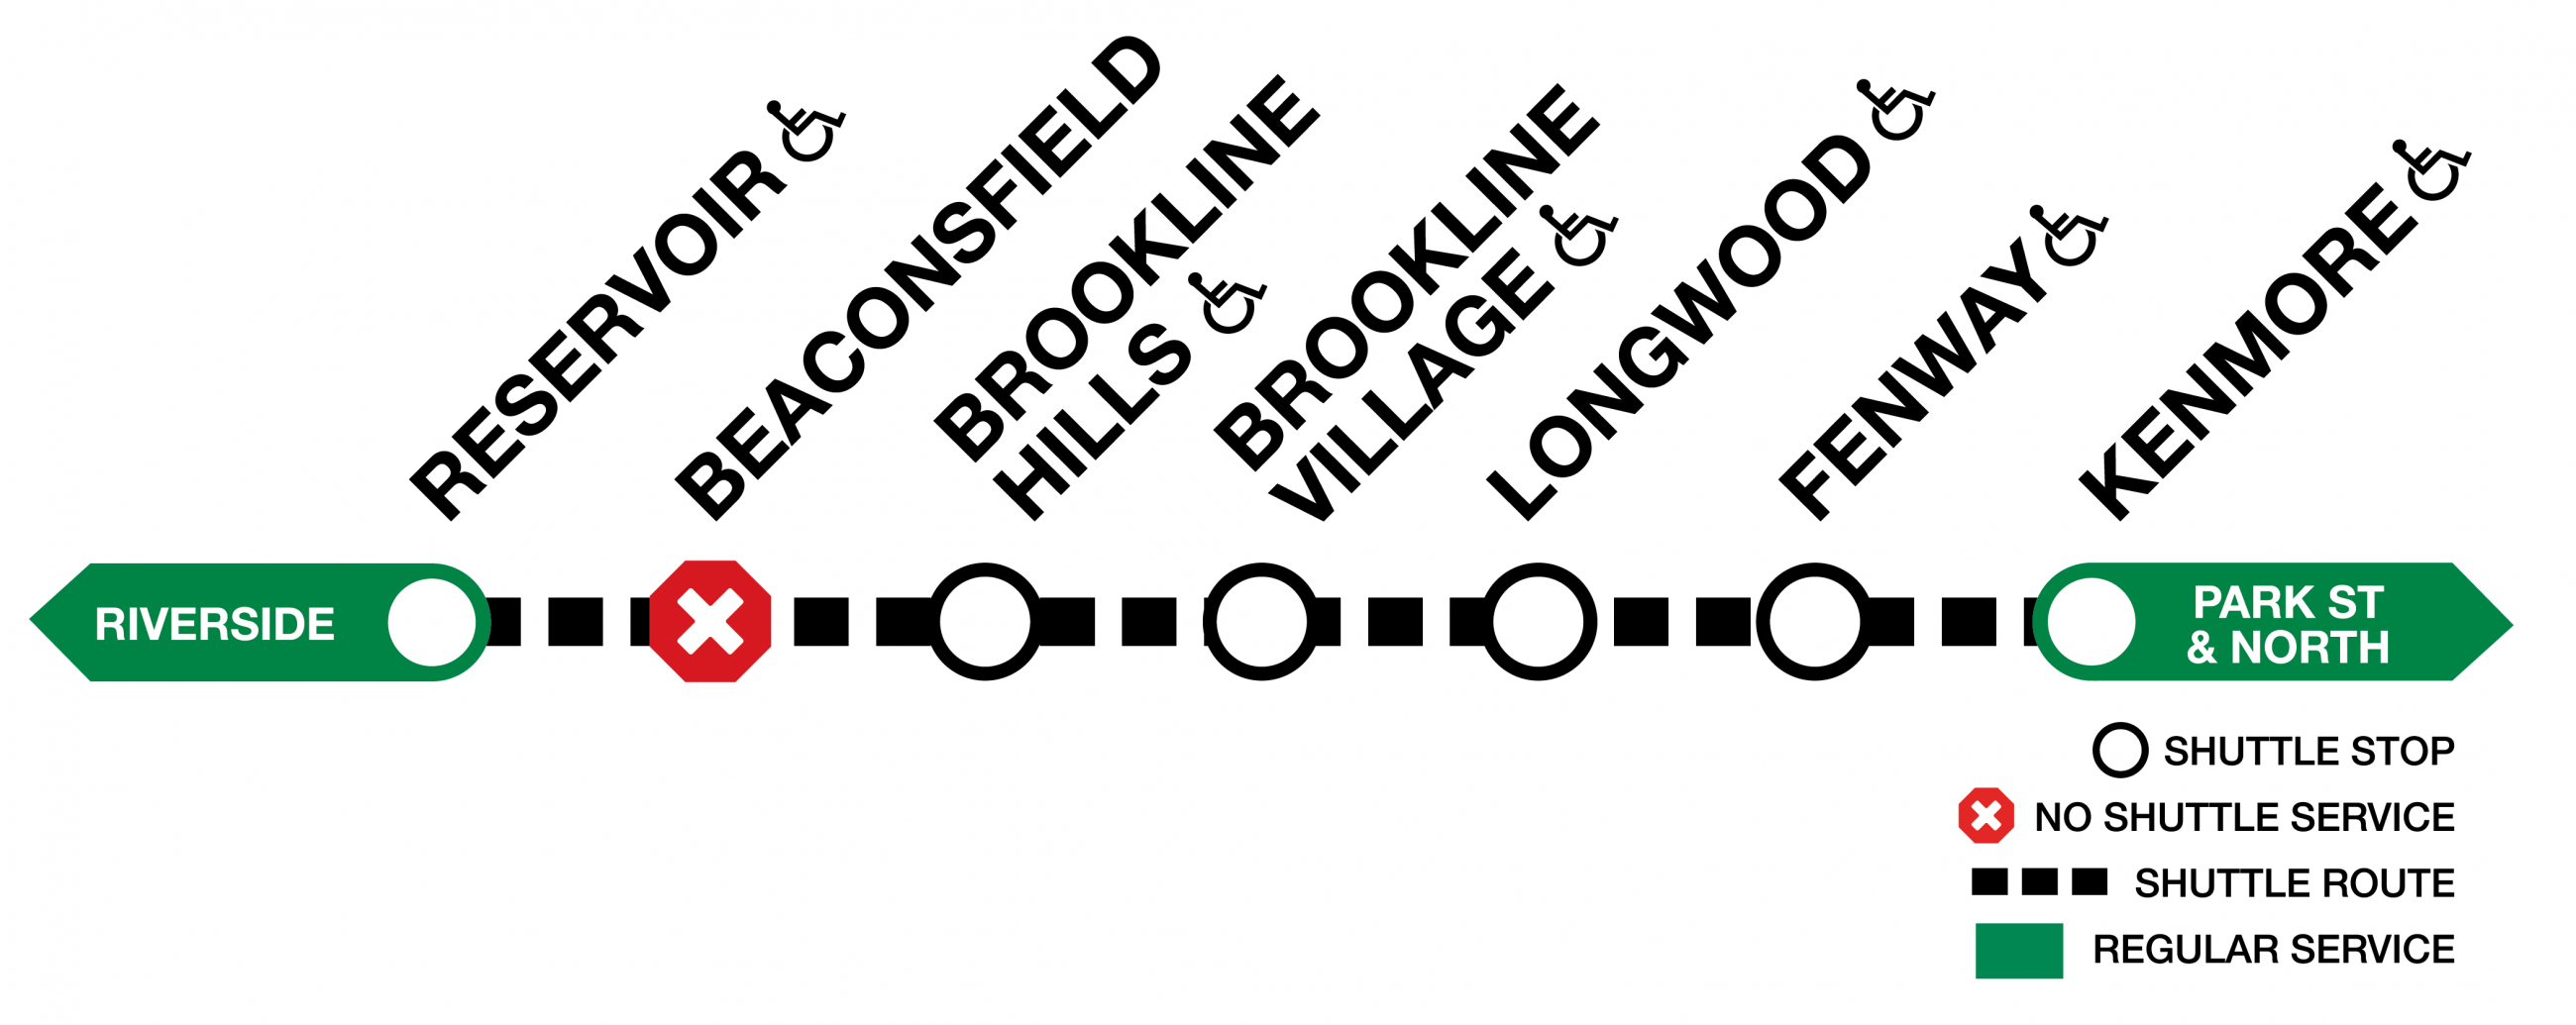 Shuttle graphic between Reservoir and Kenmore, with no service at Beaconsfield.